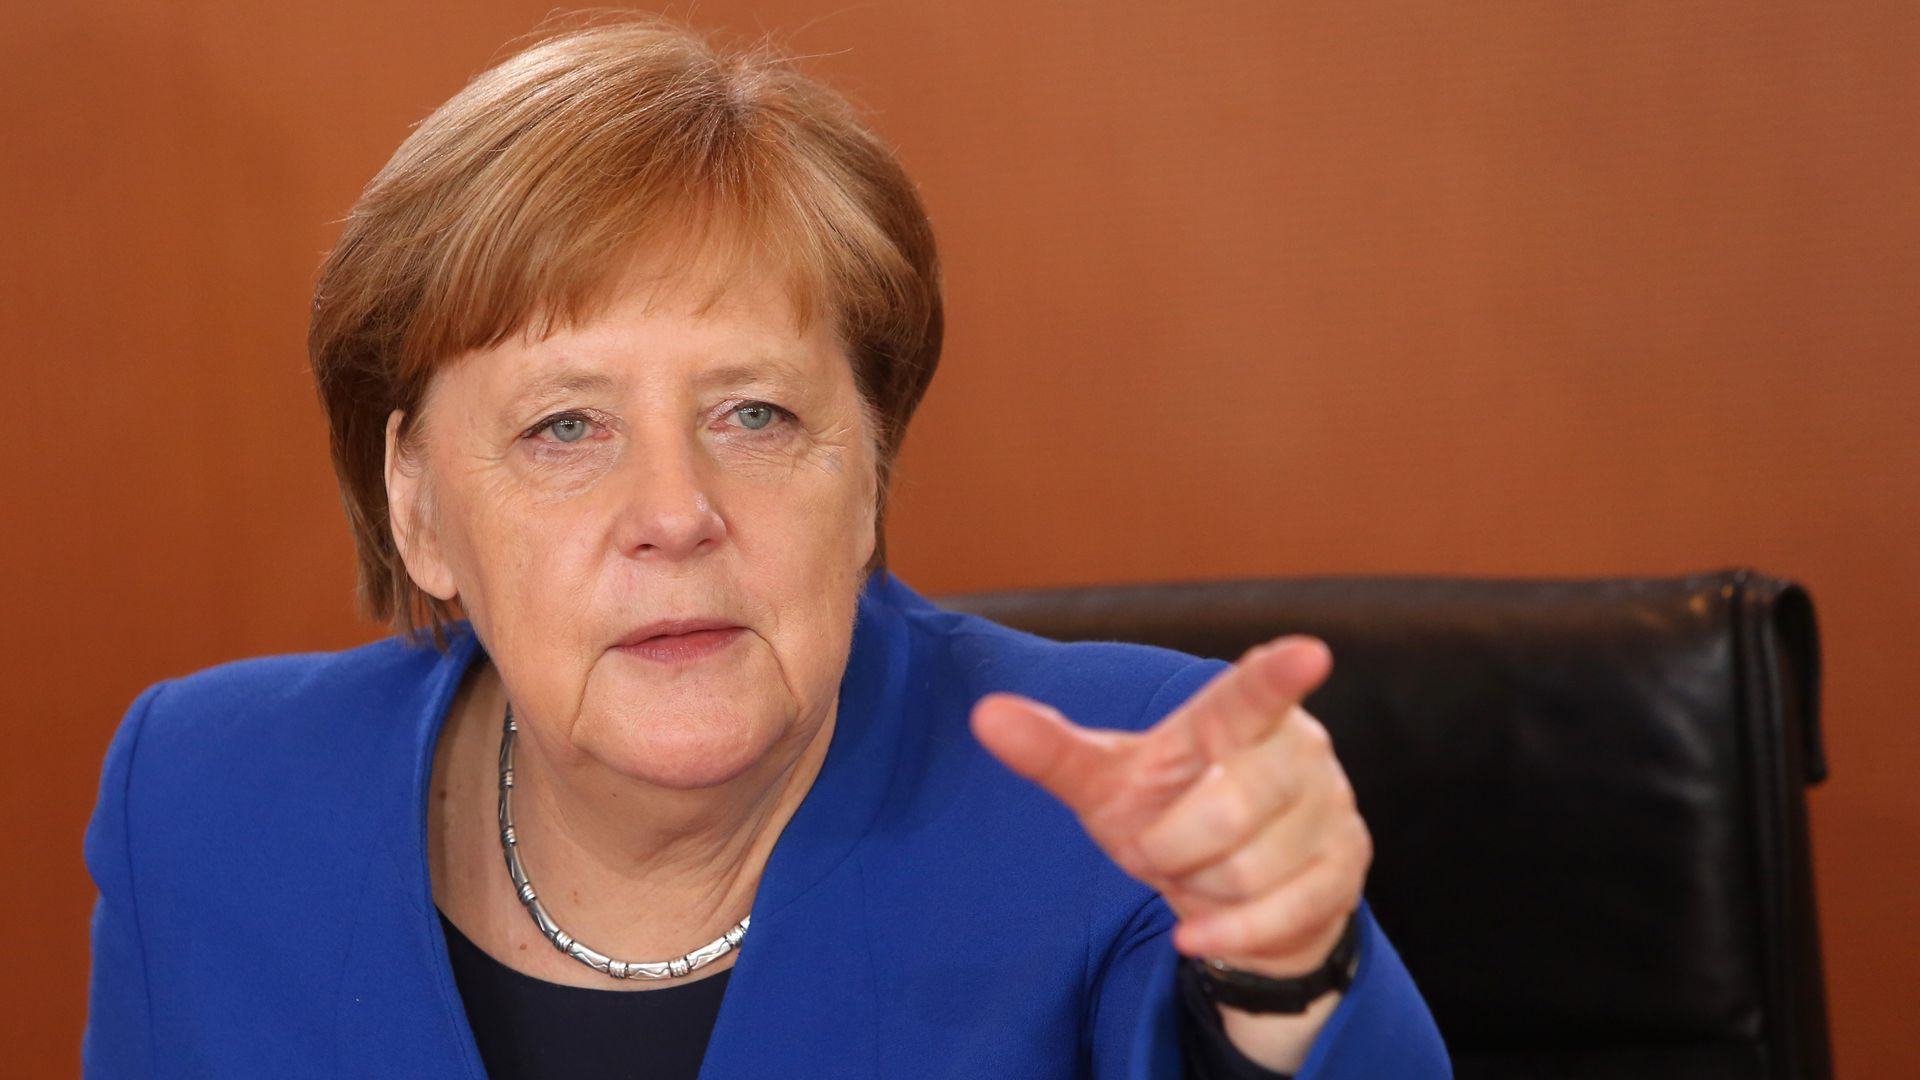 Angela Merkel speaking and gesturing